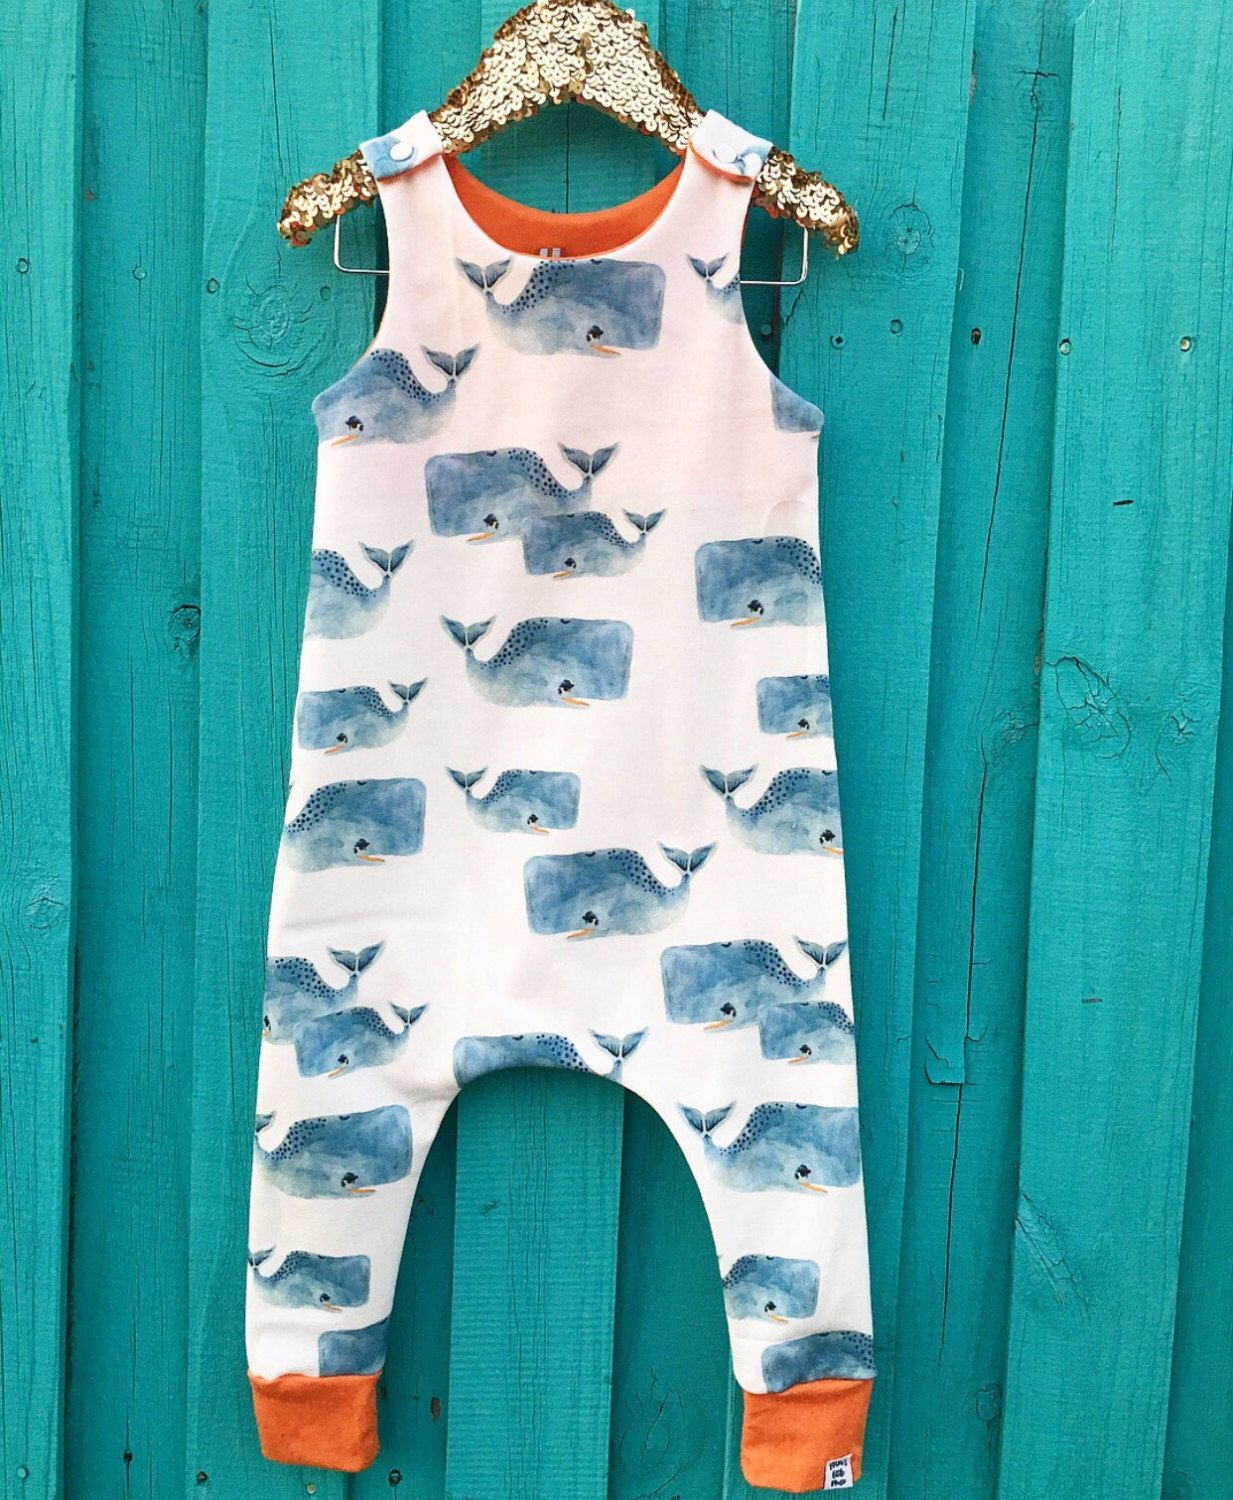 Whales Baby Romper, Baby Clothes, Organic Baby, Gender Neutral Baby ...